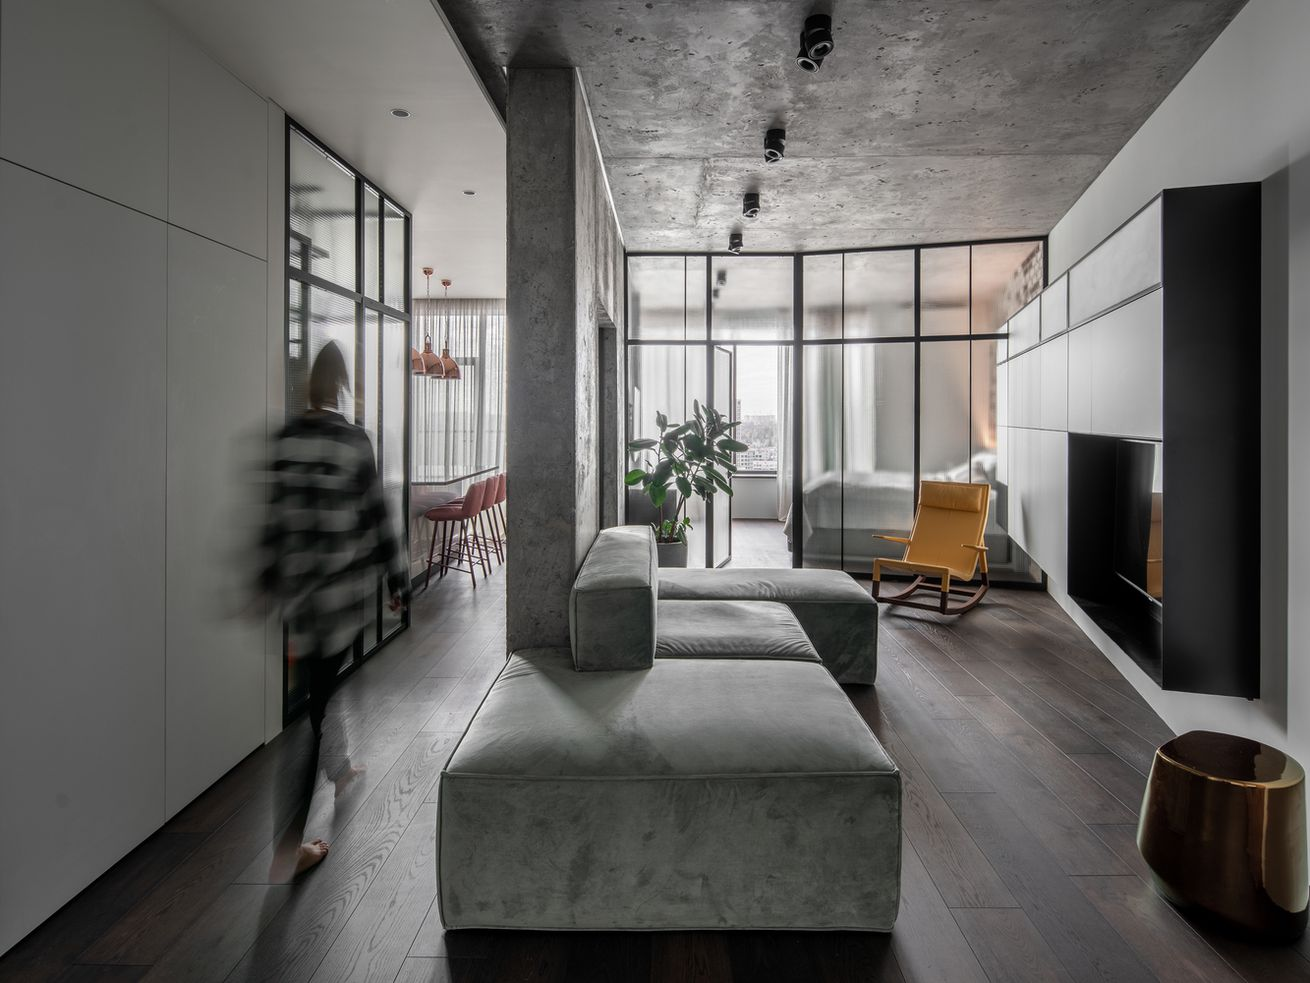 Moody apartment dresses up concrete with hints of color